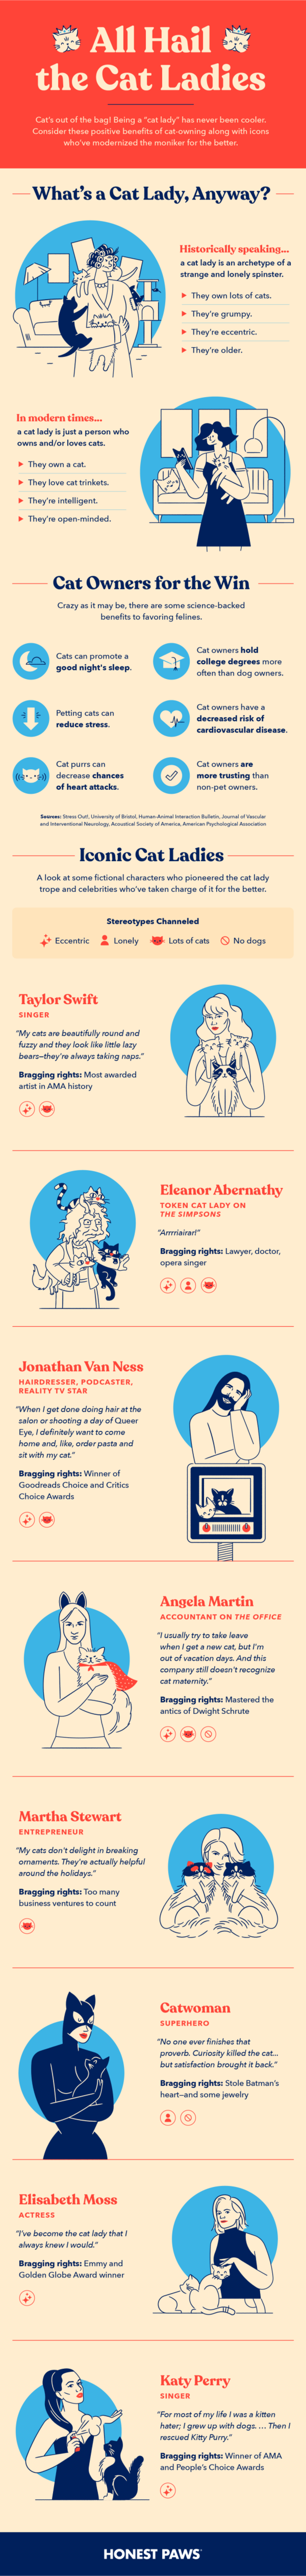 an infographic detailing what it means to be a modern-day cat lady and famous cat ladies including Taylor Swift, Eleanor Abernathy, Jonathan Van Ness, Angela Martin, Martha Stewart, Catwoman, Elisabeth Moss, and Katy Perry